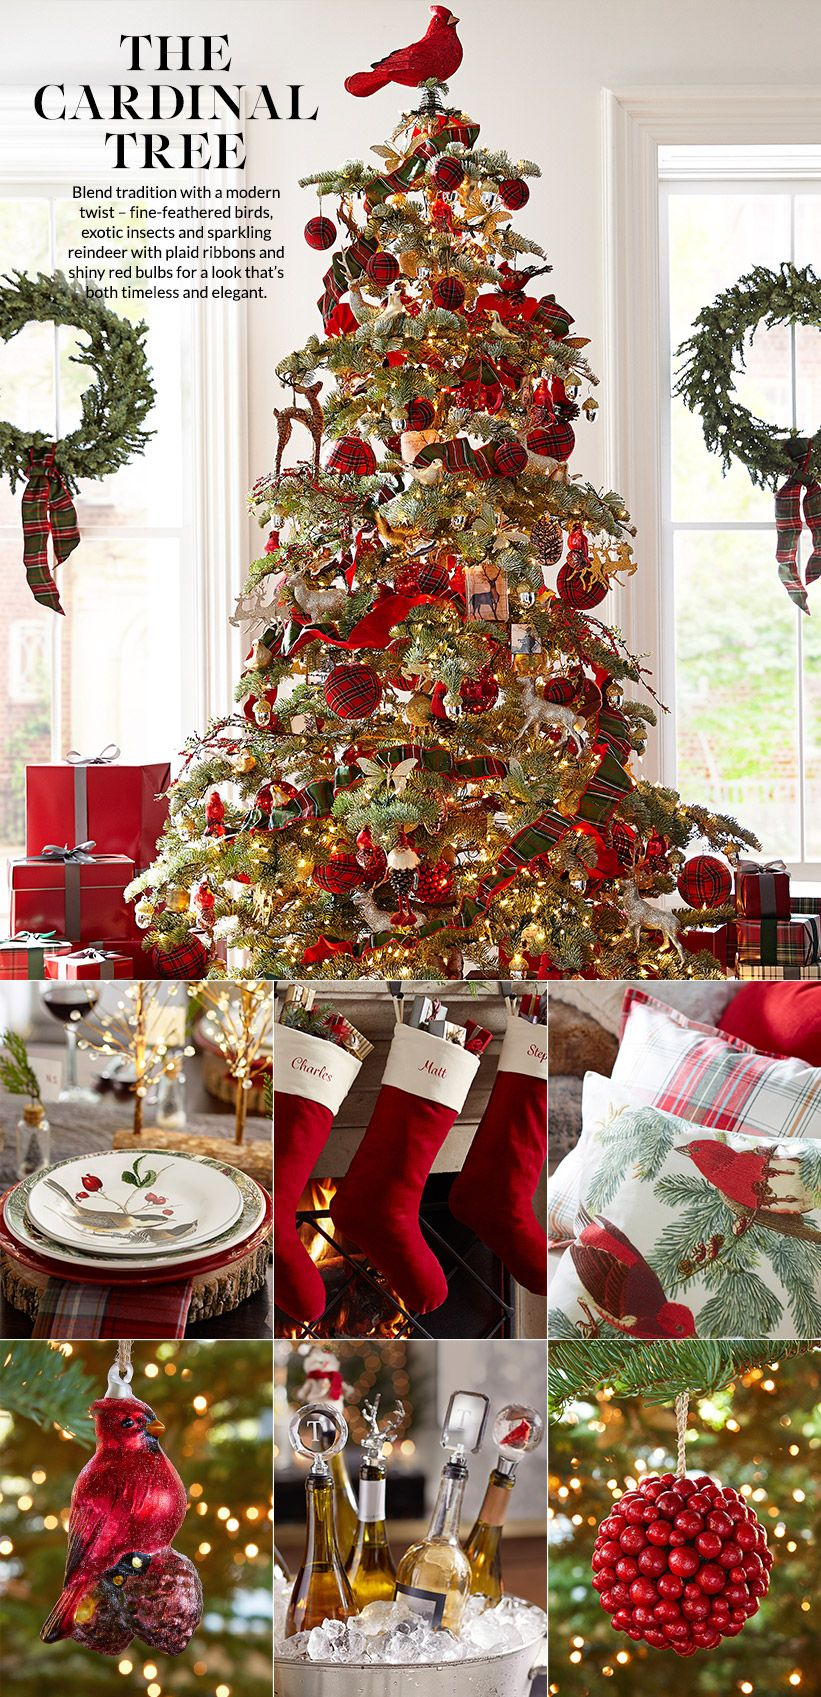 Pottery Barn Cardinal Tree With Many Plaid Ornaments